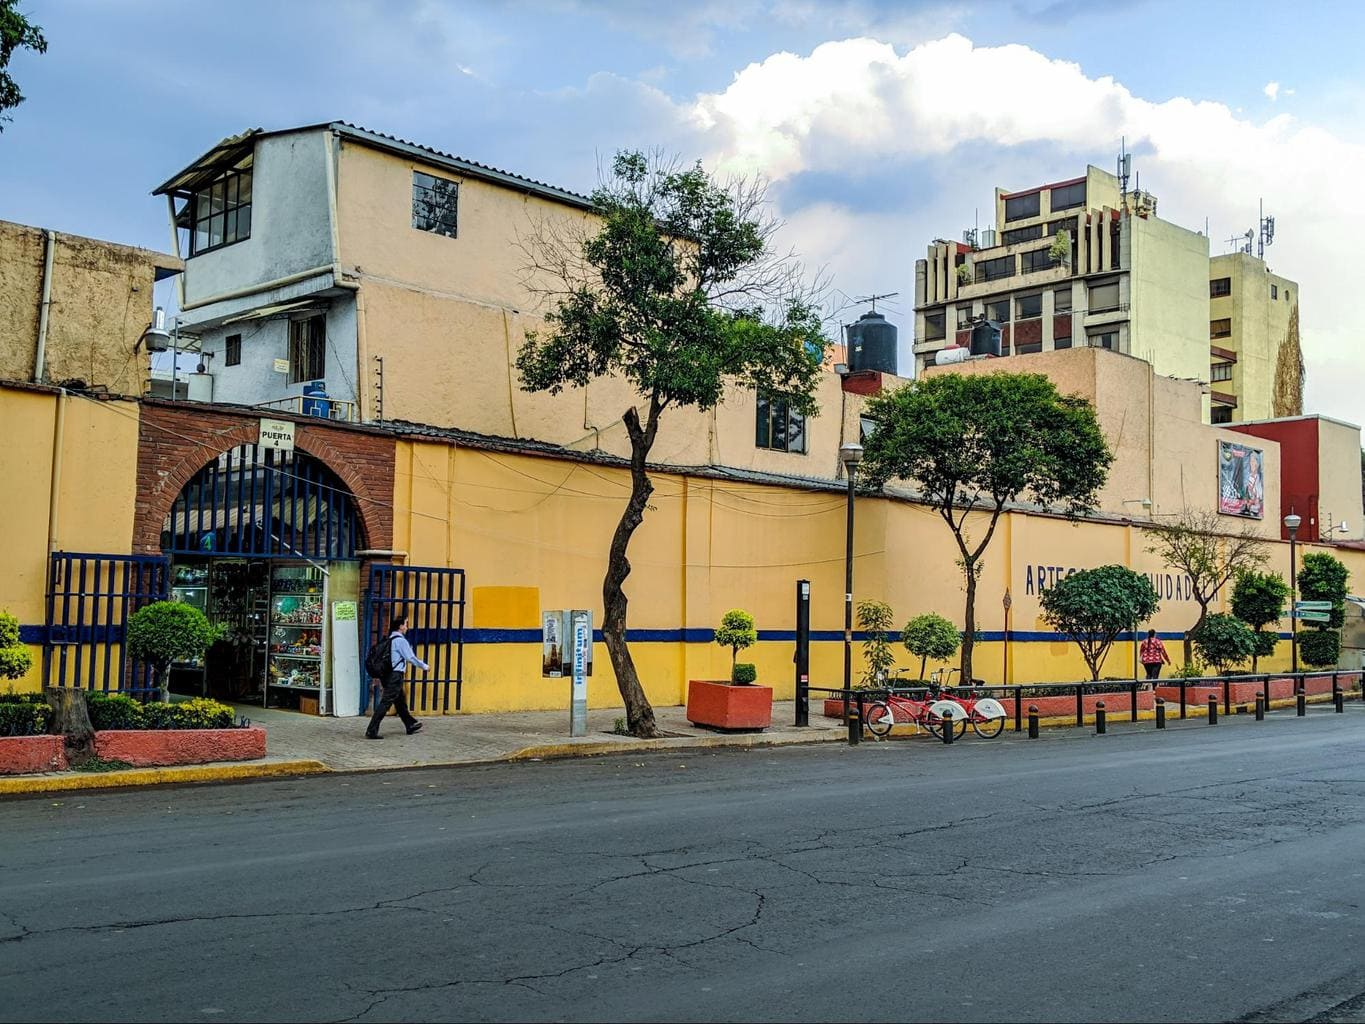 Mercado de la Ciudadela in Mexico City